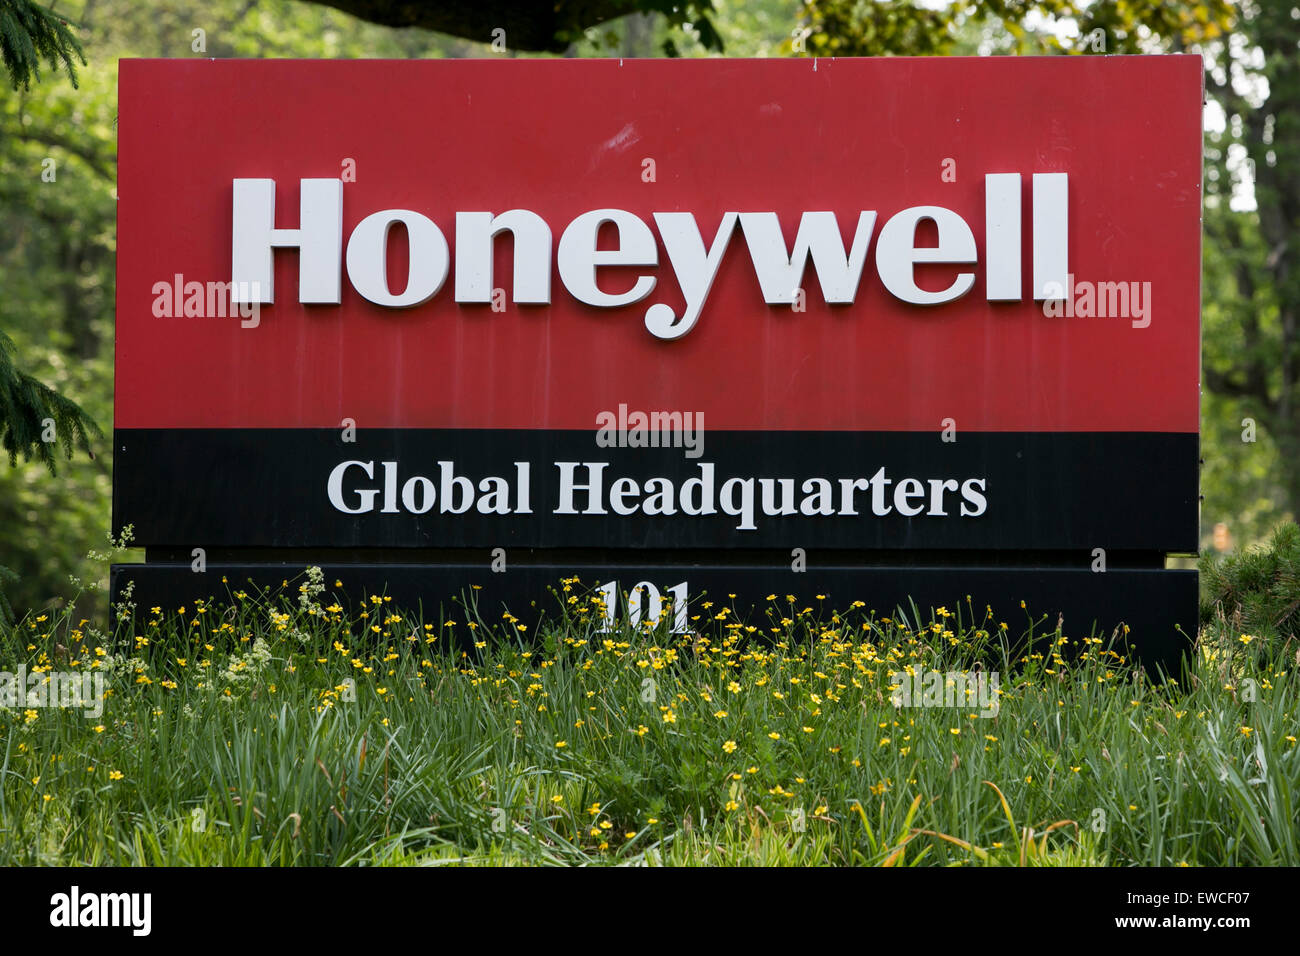 Honeywell Logo Stock Photos & Honeywell Logo Stock Images